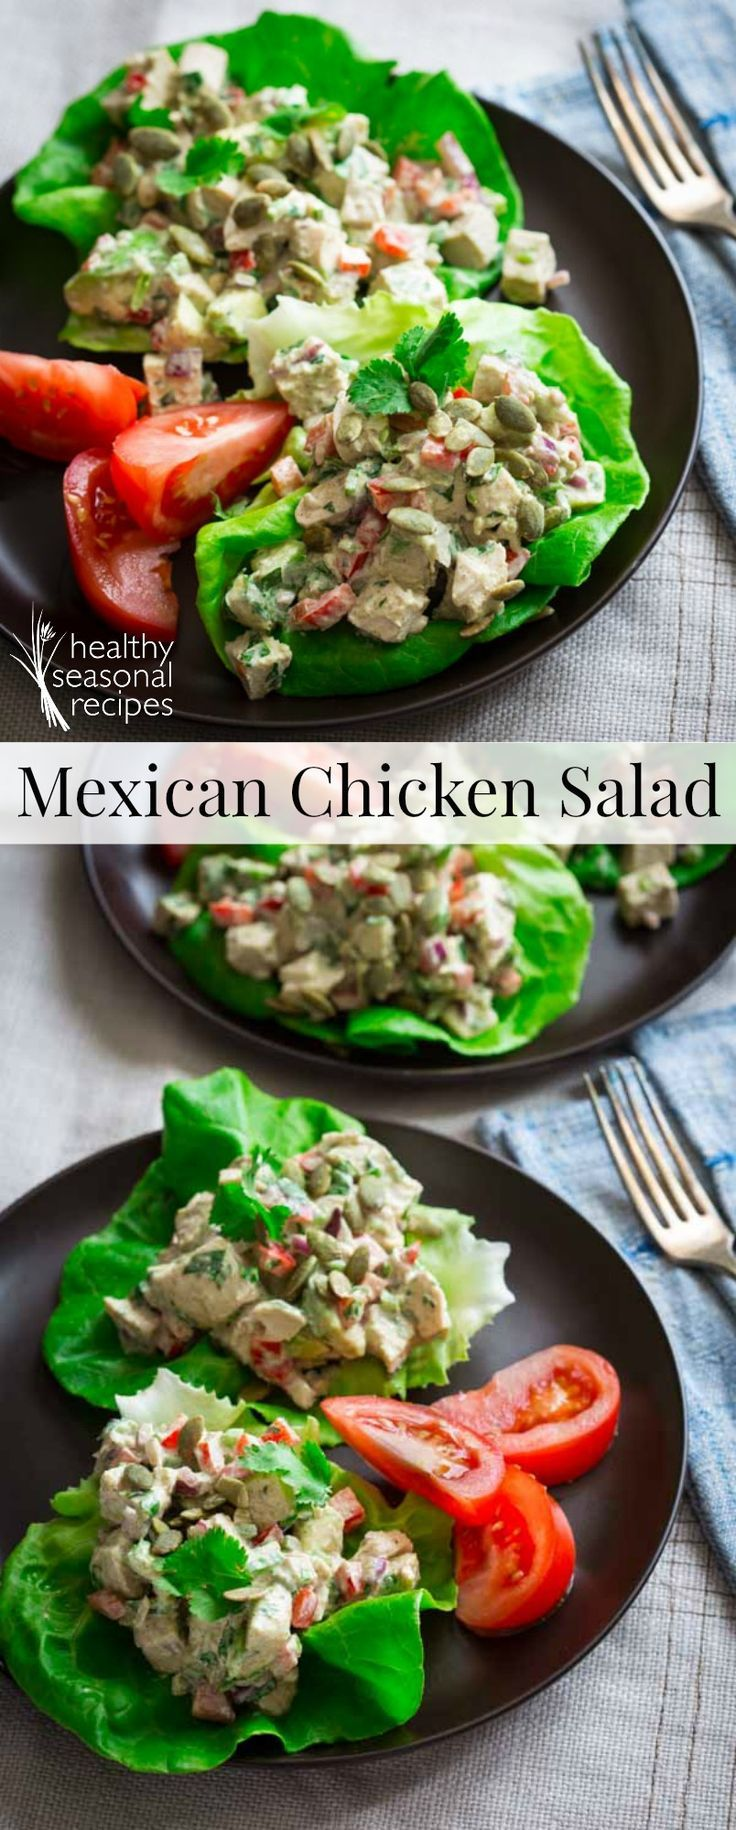 Low Carb Mexican Chicken Salad lettuce cups with Avocado and Pepitas - Healthy Seasonal Recipes